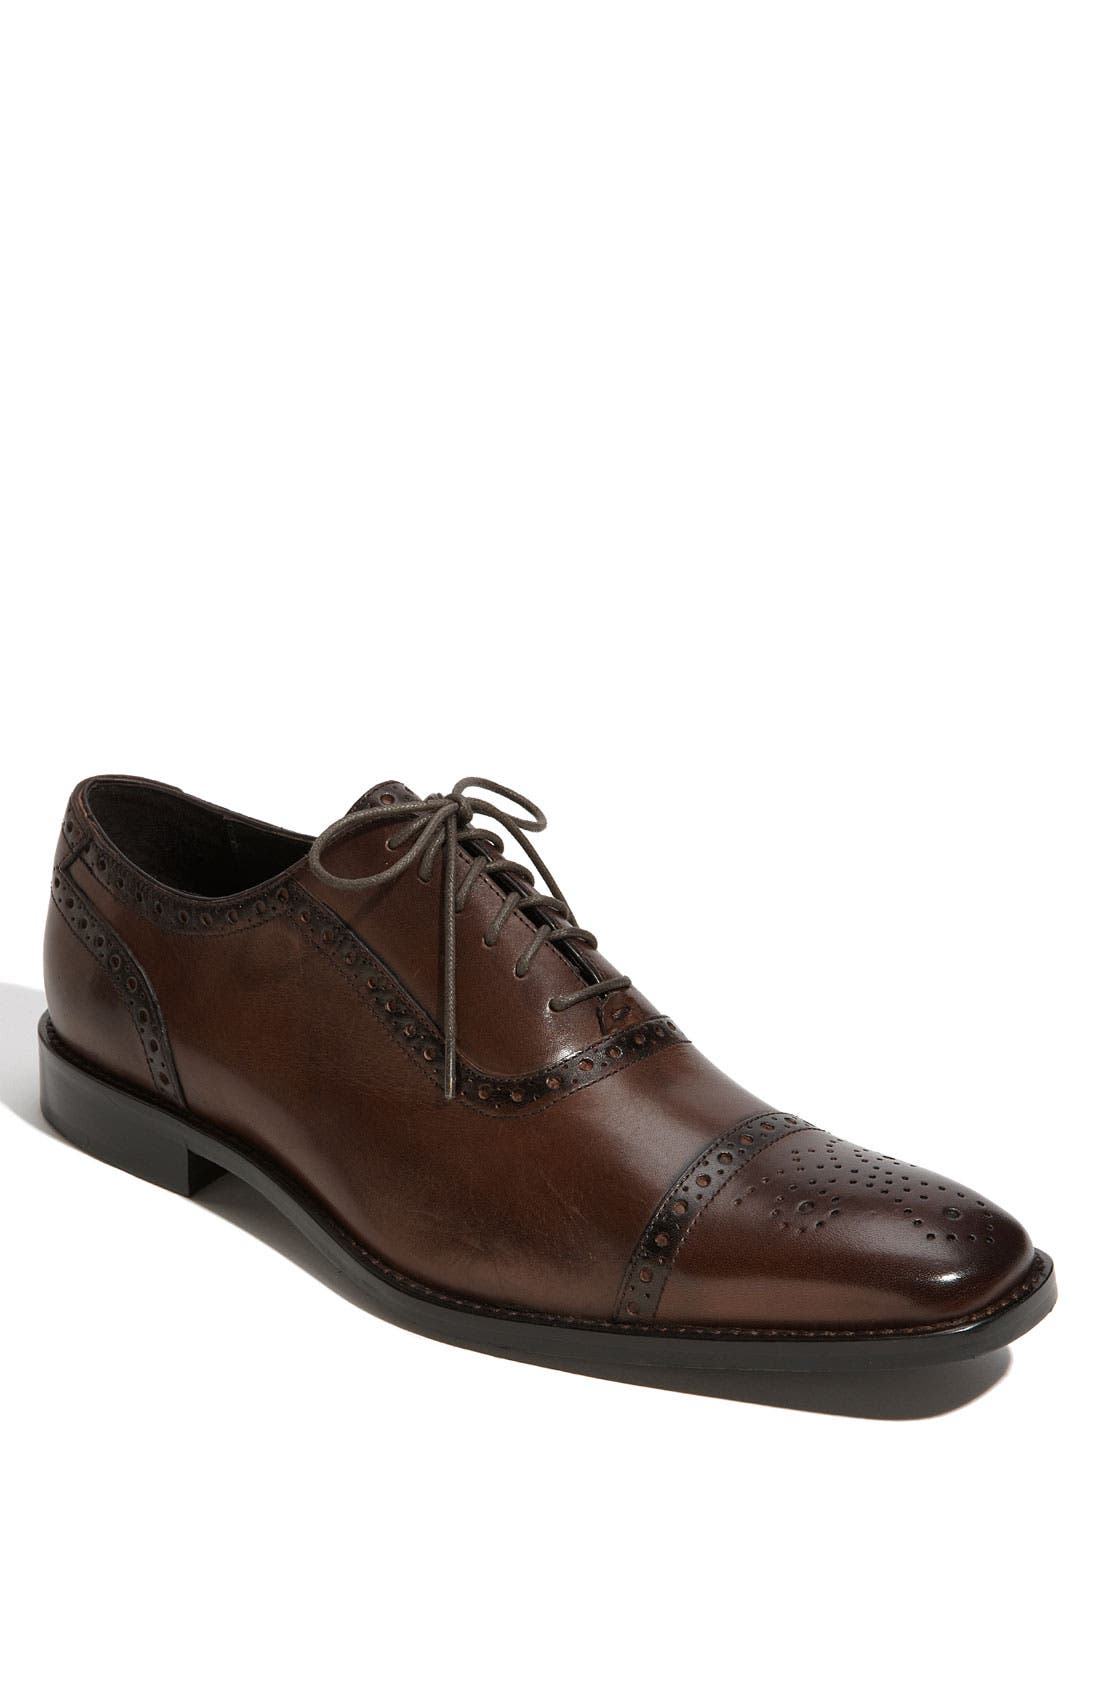 Main Image - Calibrate 'Brandon' Cap Toe Oxford